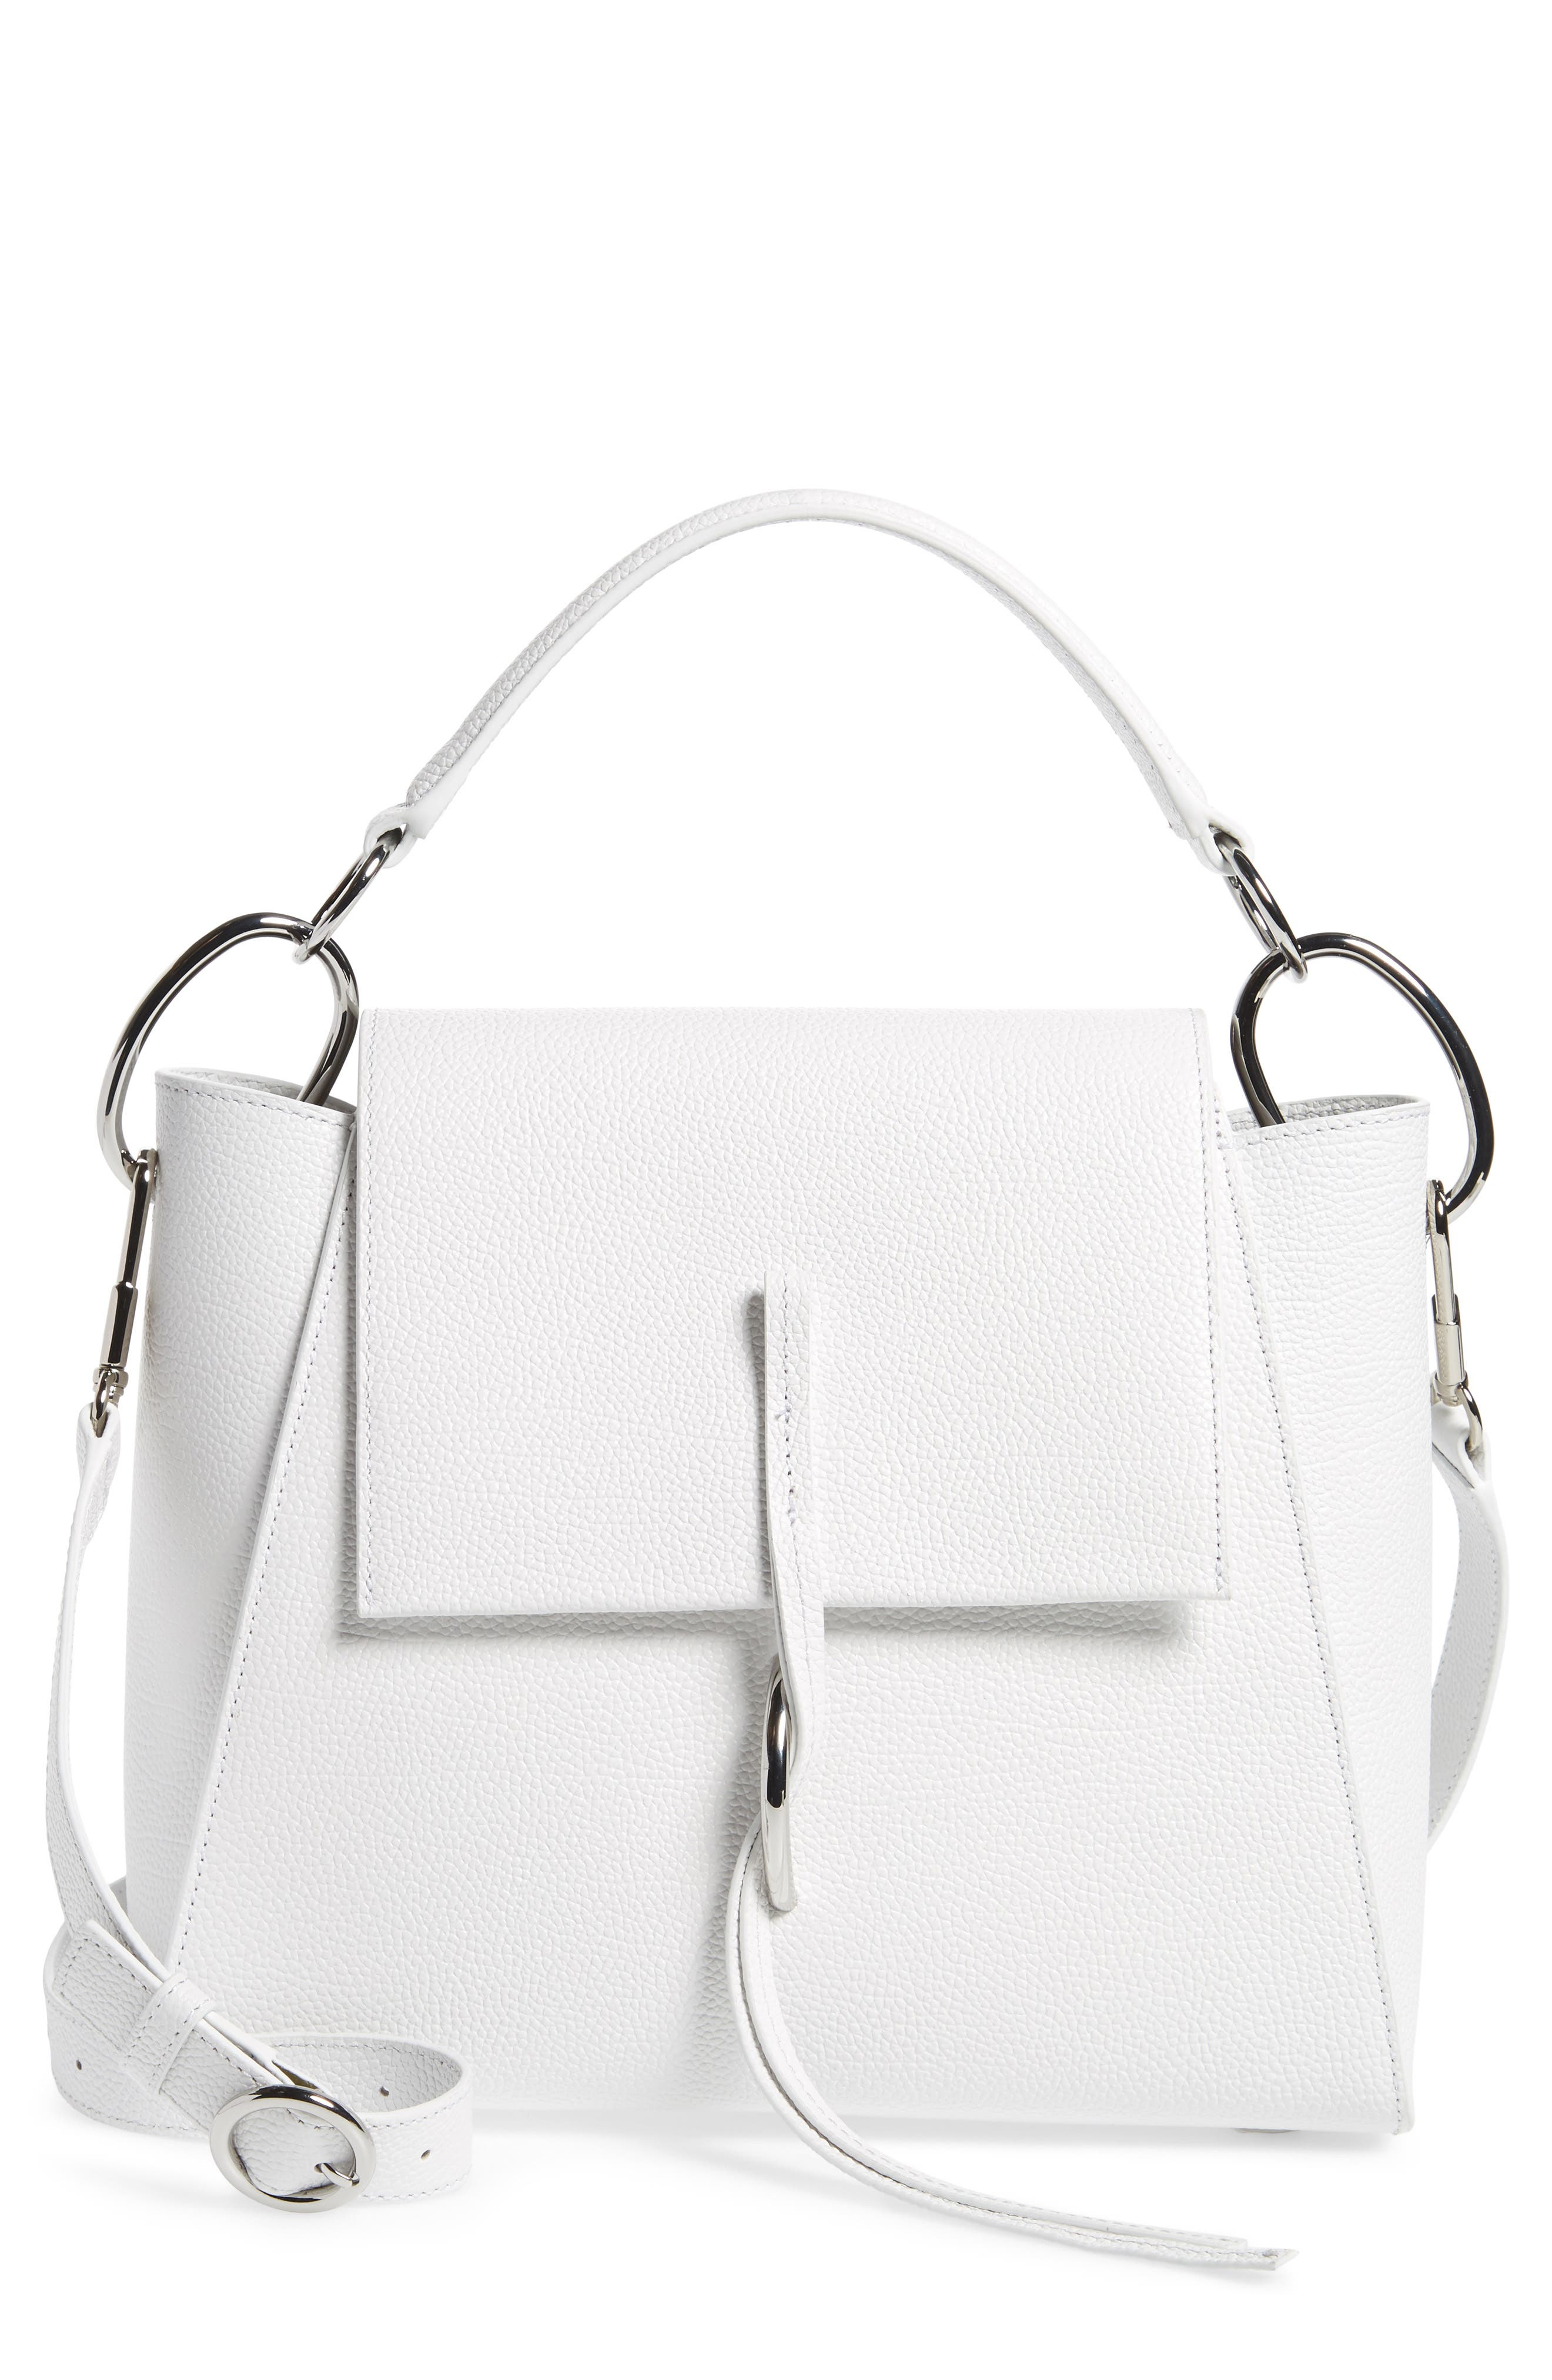 Leigh Top Handle Leather Satchel,                             Main thumbnail 1, color,                             Off White